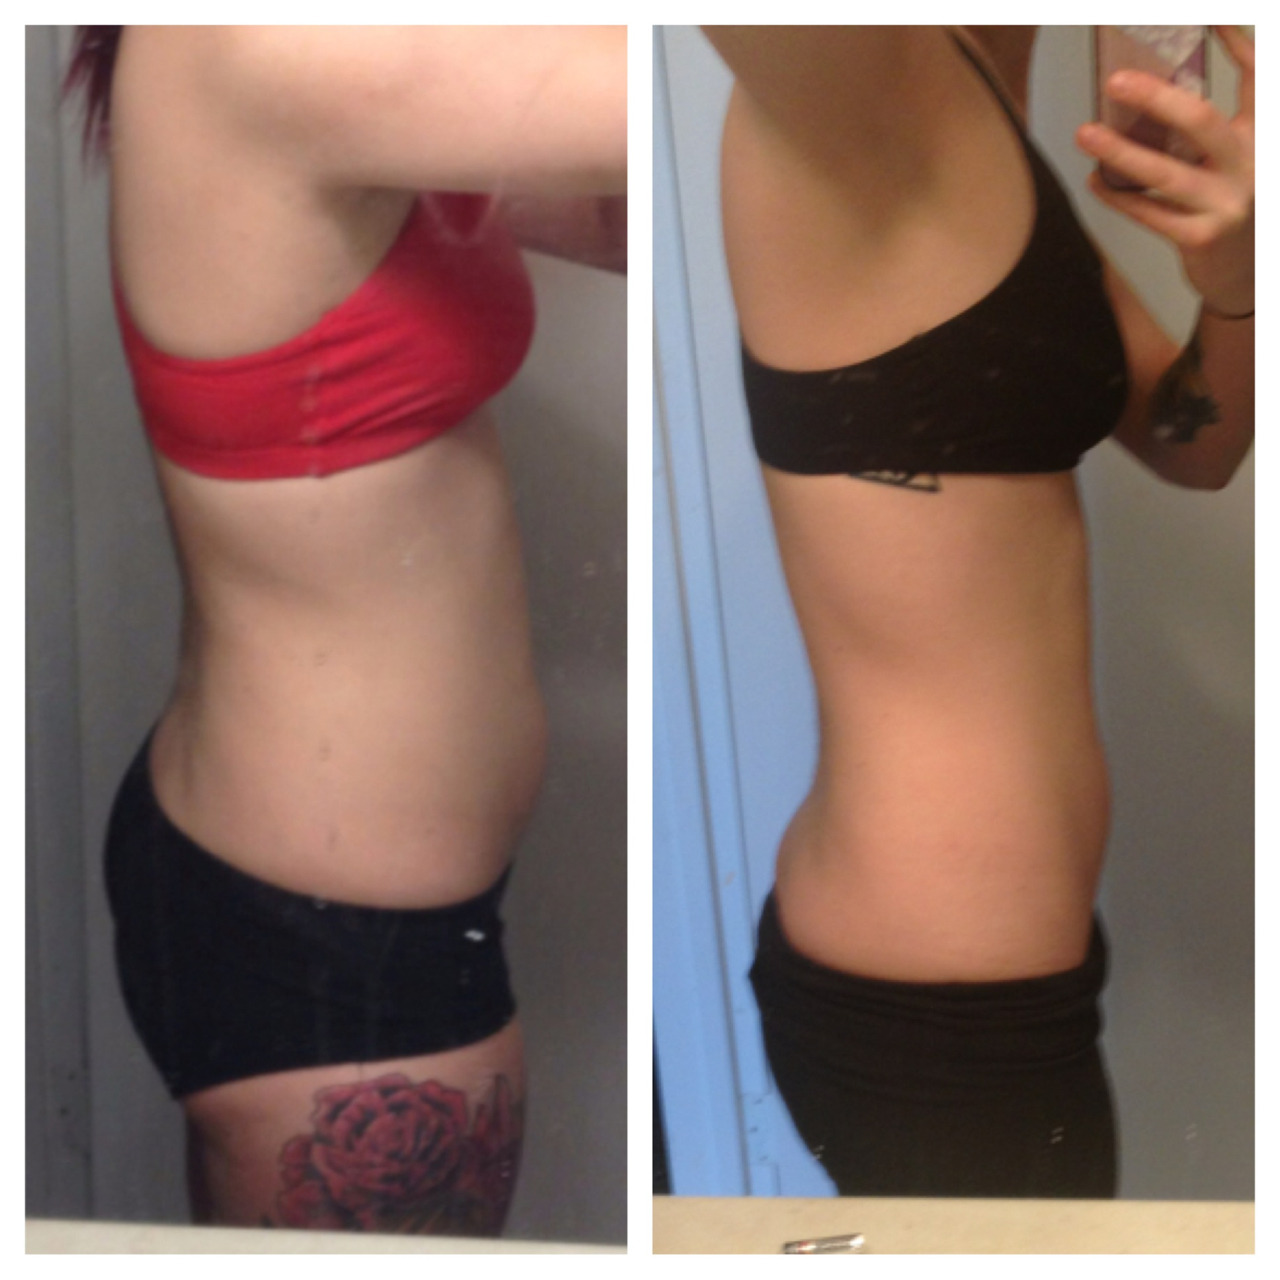 jillsansjack:  August 2012 - March 2013. About a 20 pound difference. I am insanely proud of myself.